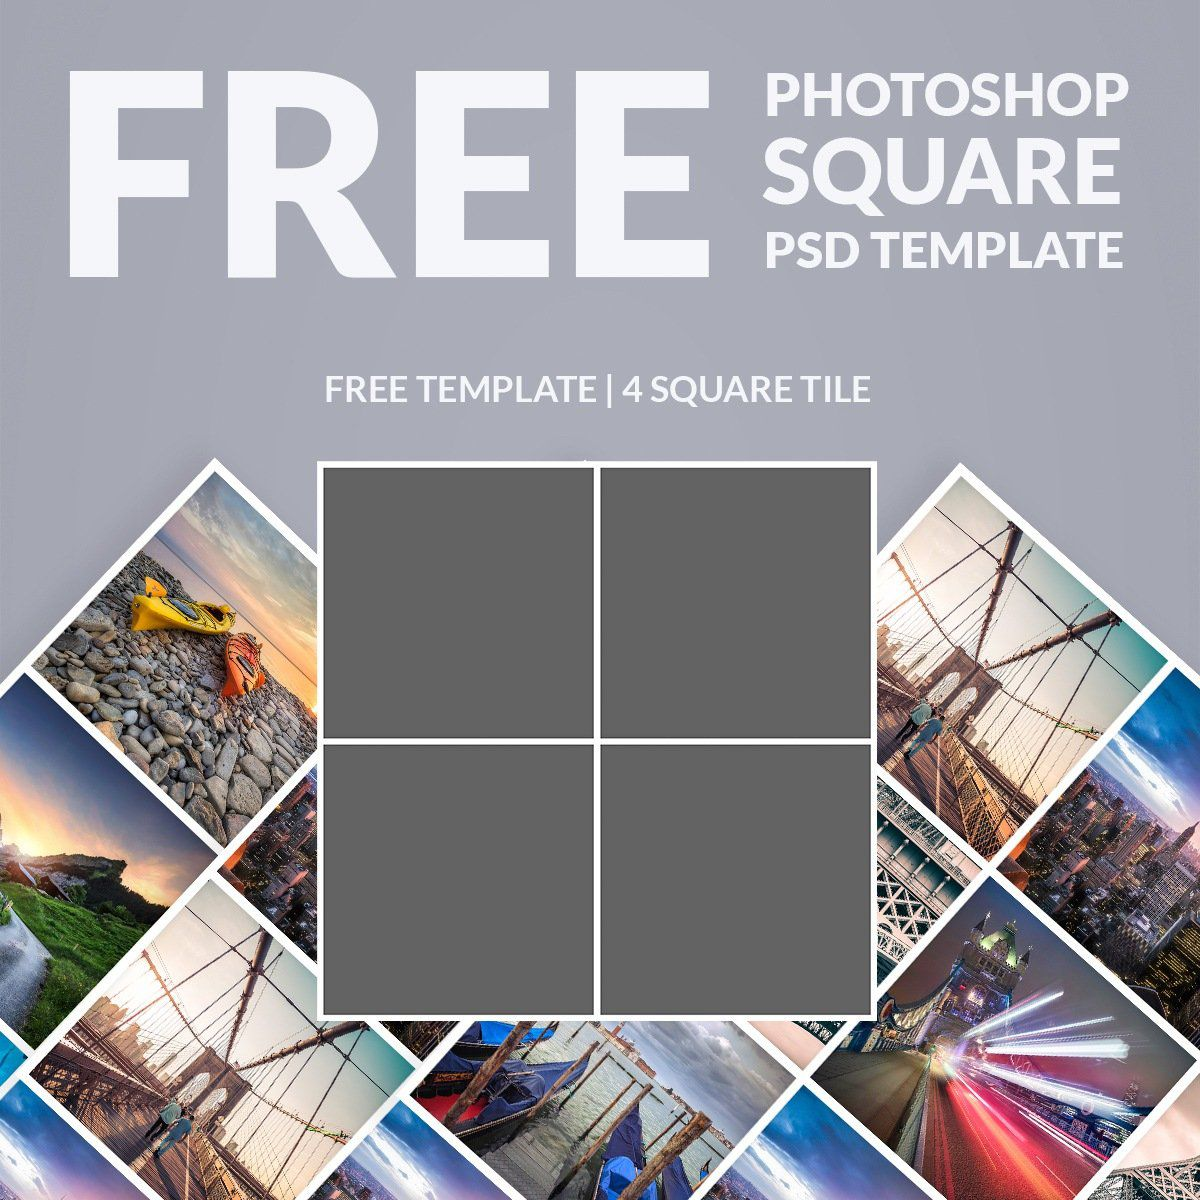 006 Unbelievable Free Photo Collage Template Psd Design  Heart Shaped DownloadFull